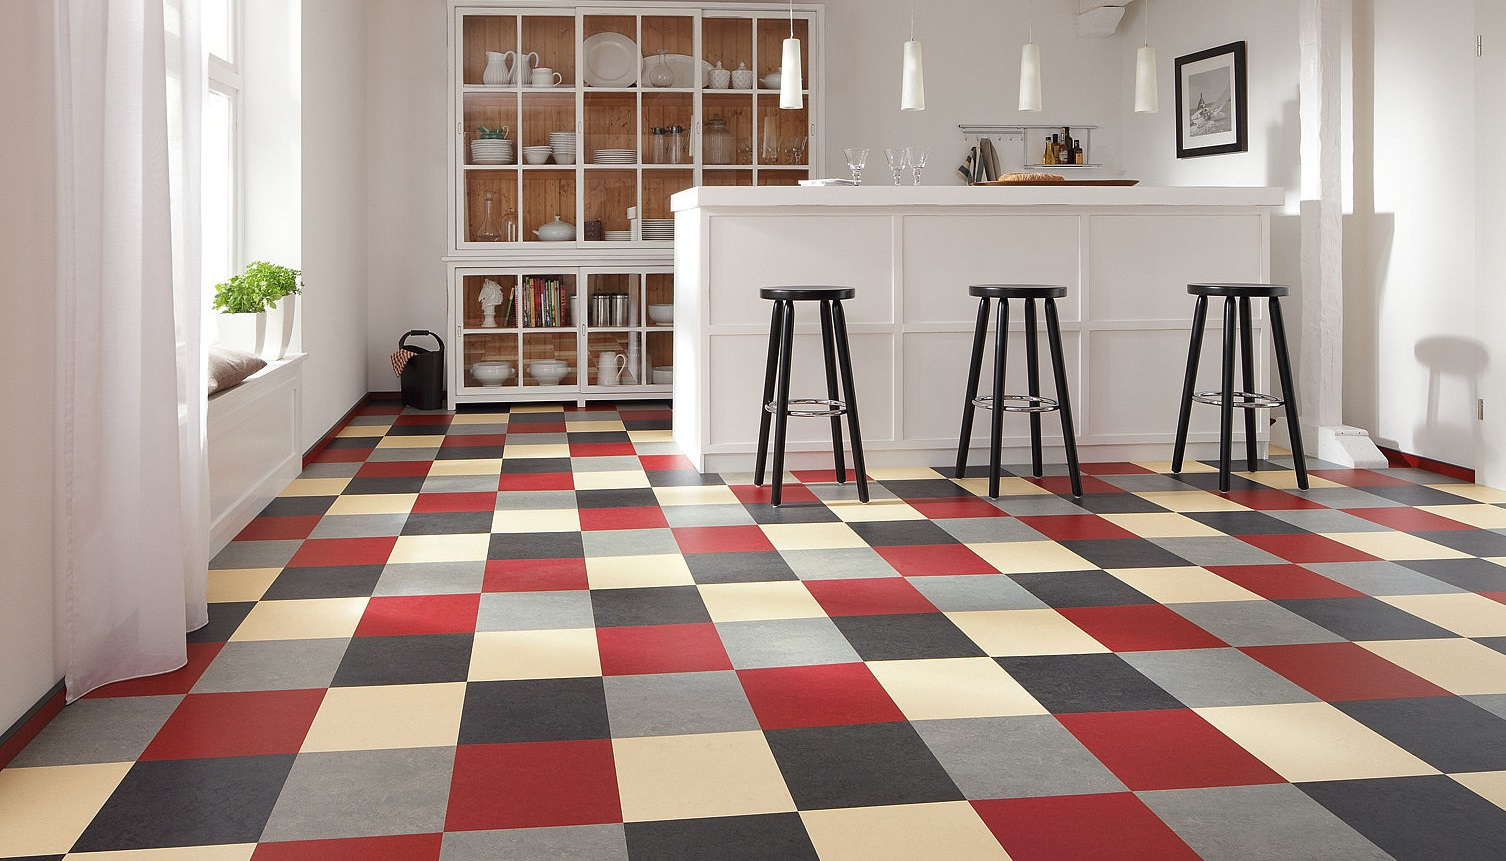 4 Simple Tips For Linoleum Floor Owners Your Floor Guys